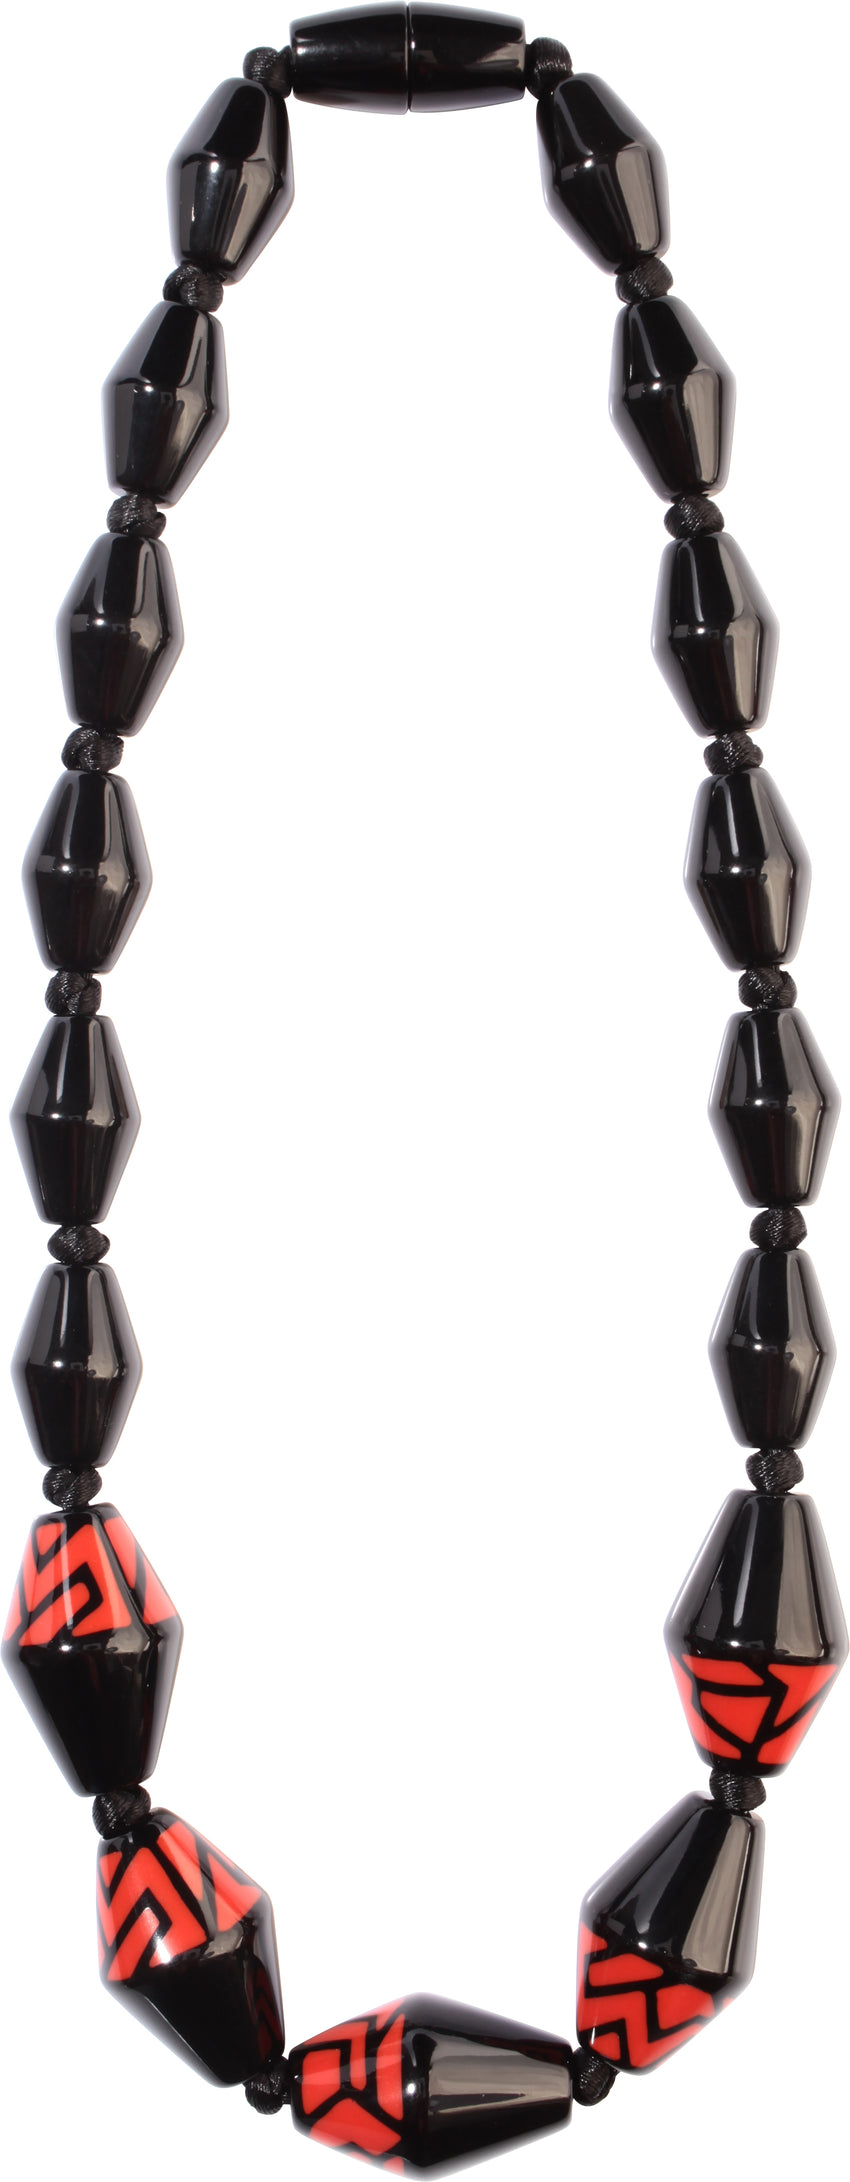 3260101BREDQ17 NYC Necklace 101 Black Red Q17